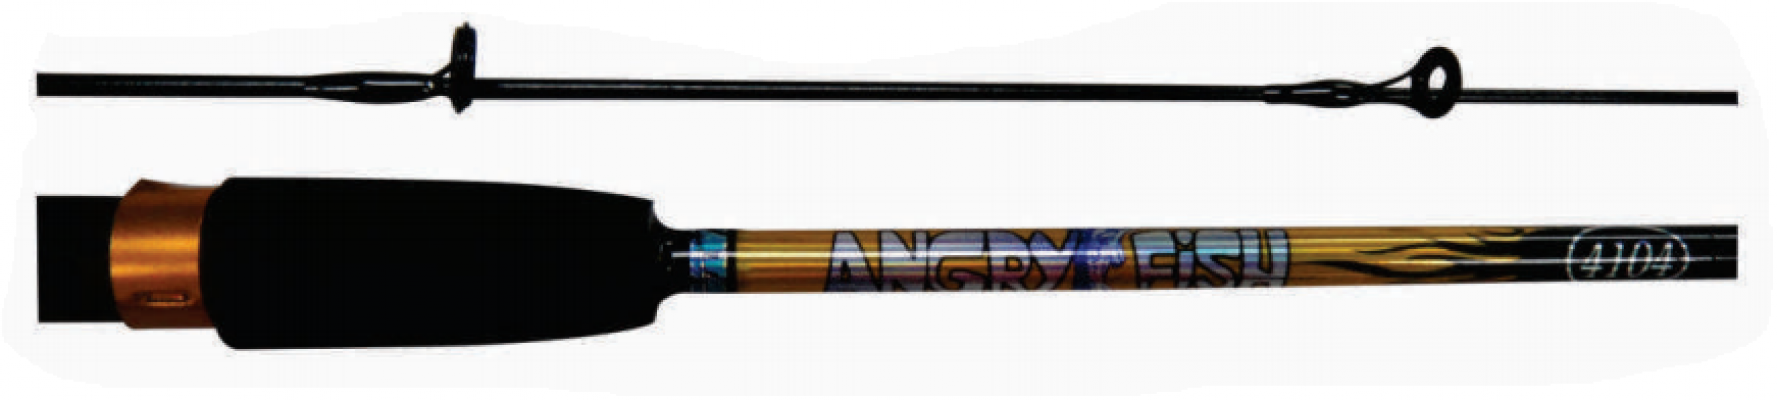 4104 ANGRY FISH PRAWN ROD (HOLLOW/SOLID TOP)